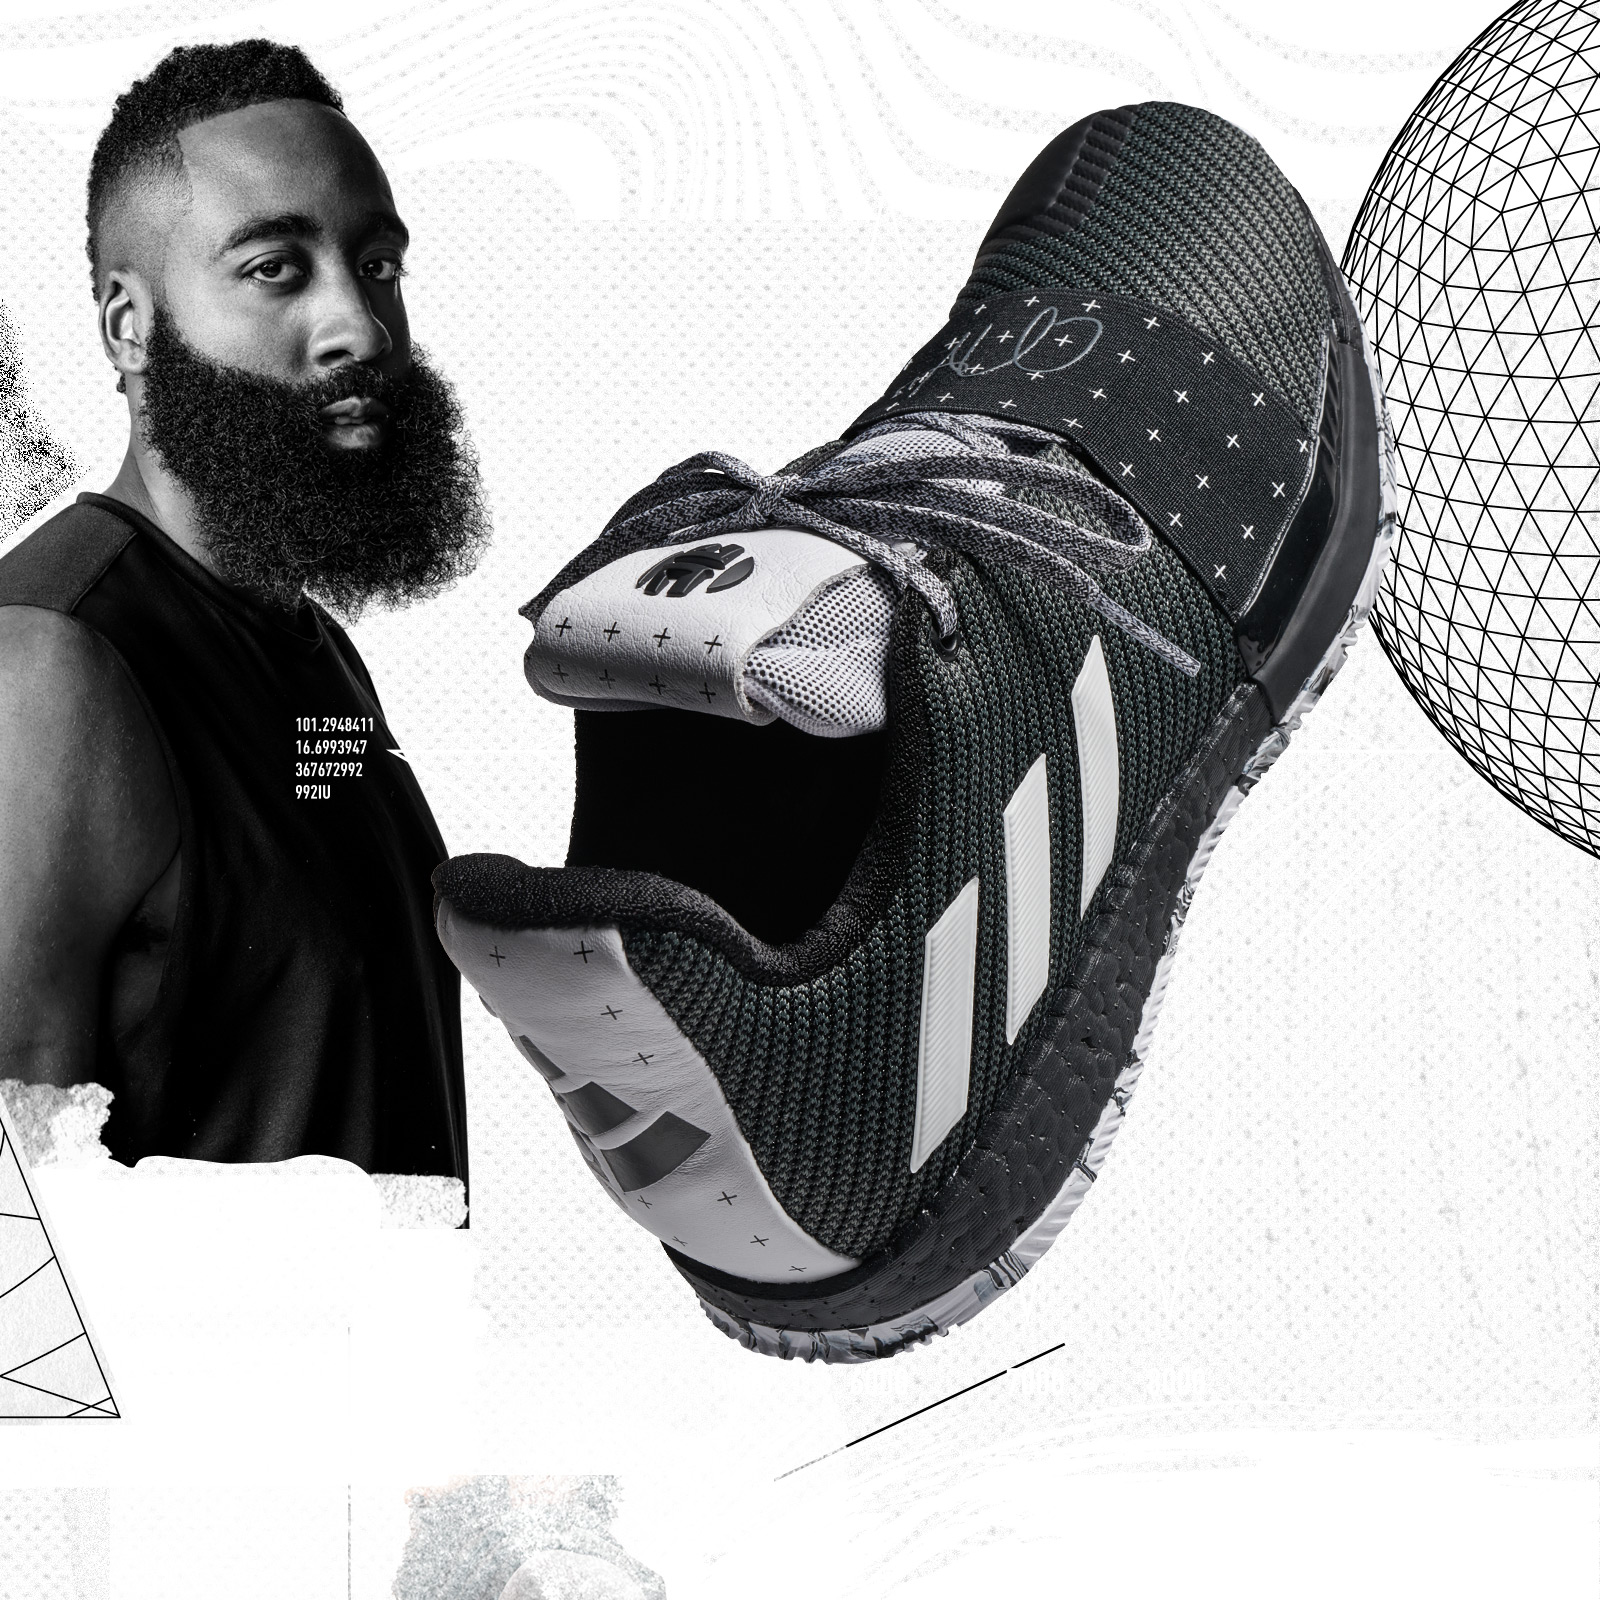 6de7687bcc29 Adidas announces James Harden s new signature shoe ...